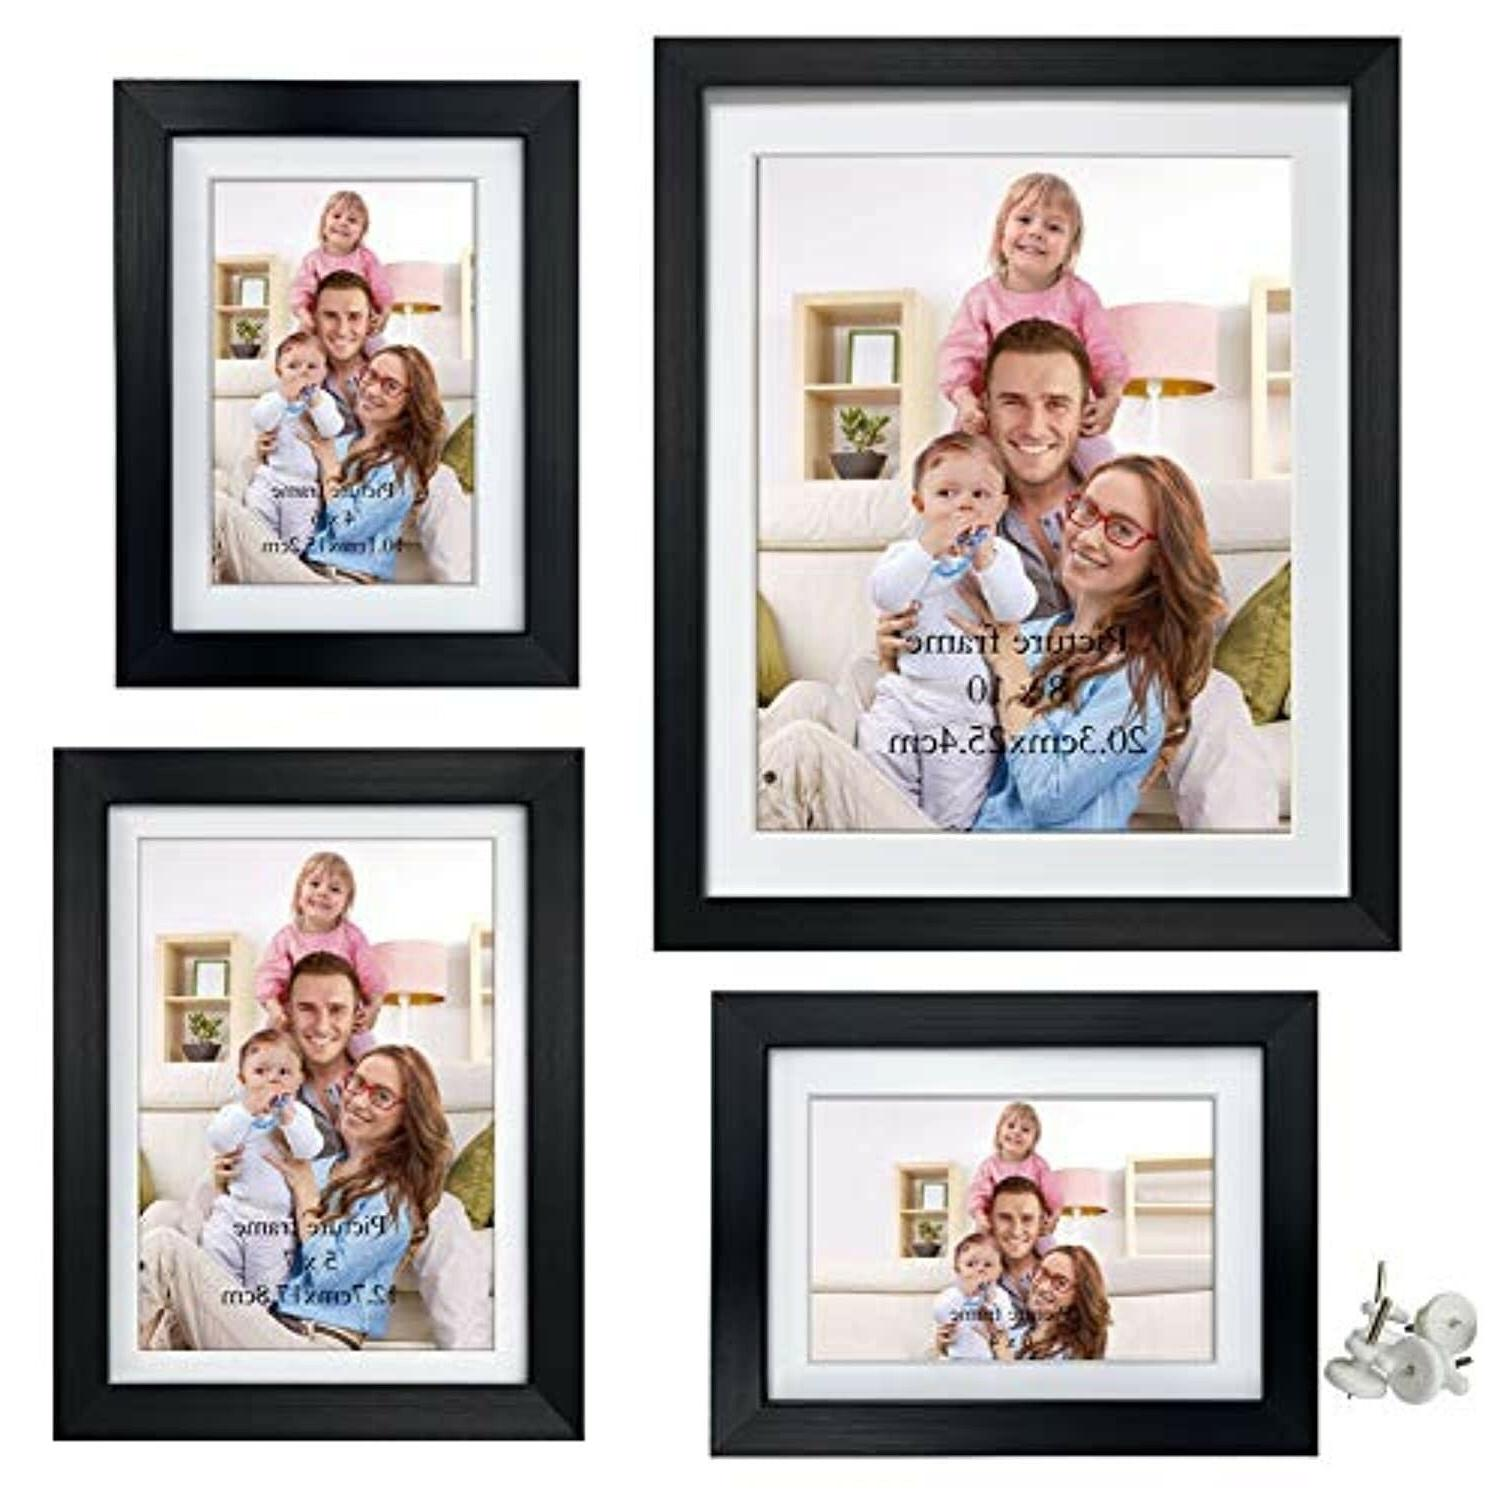 Giftgarden Multiple Black Picture Frame Set, Two 4x6, One 5x